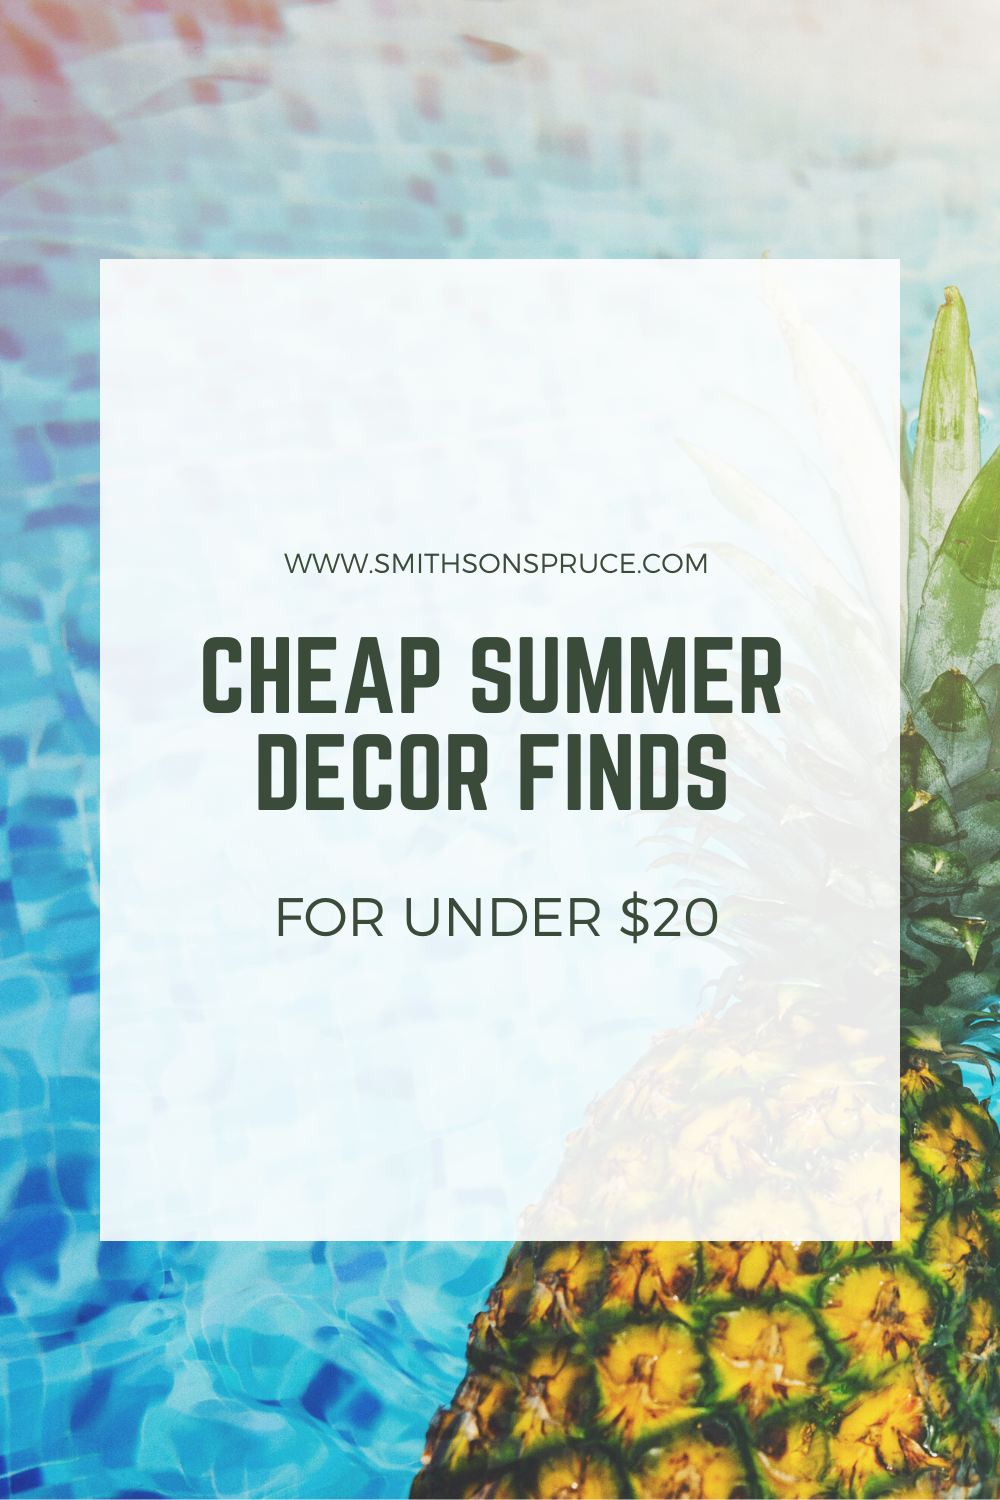 Cute Summer Decor Finds for Under $20!